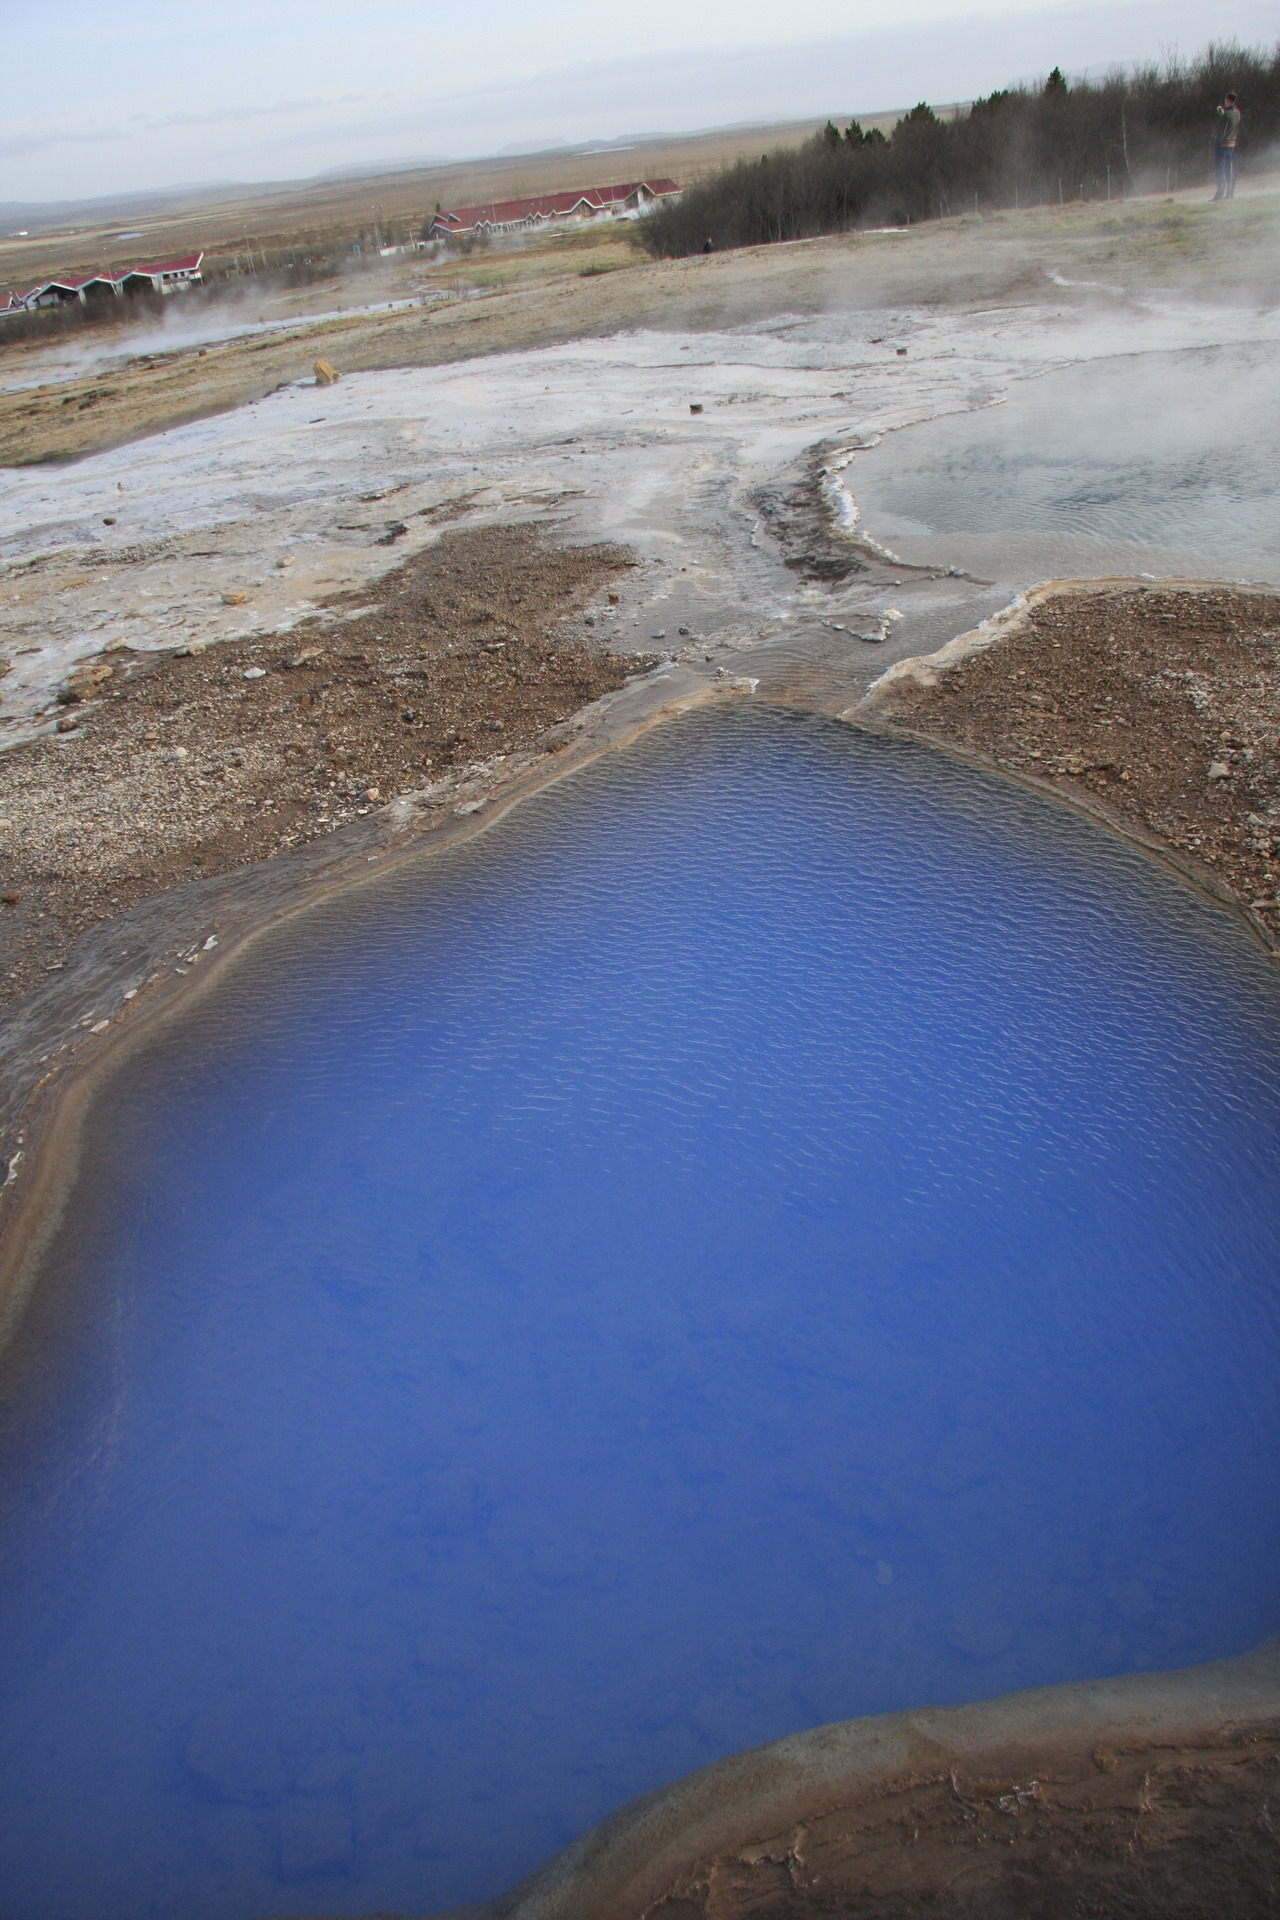 A very blue lake in Iceland